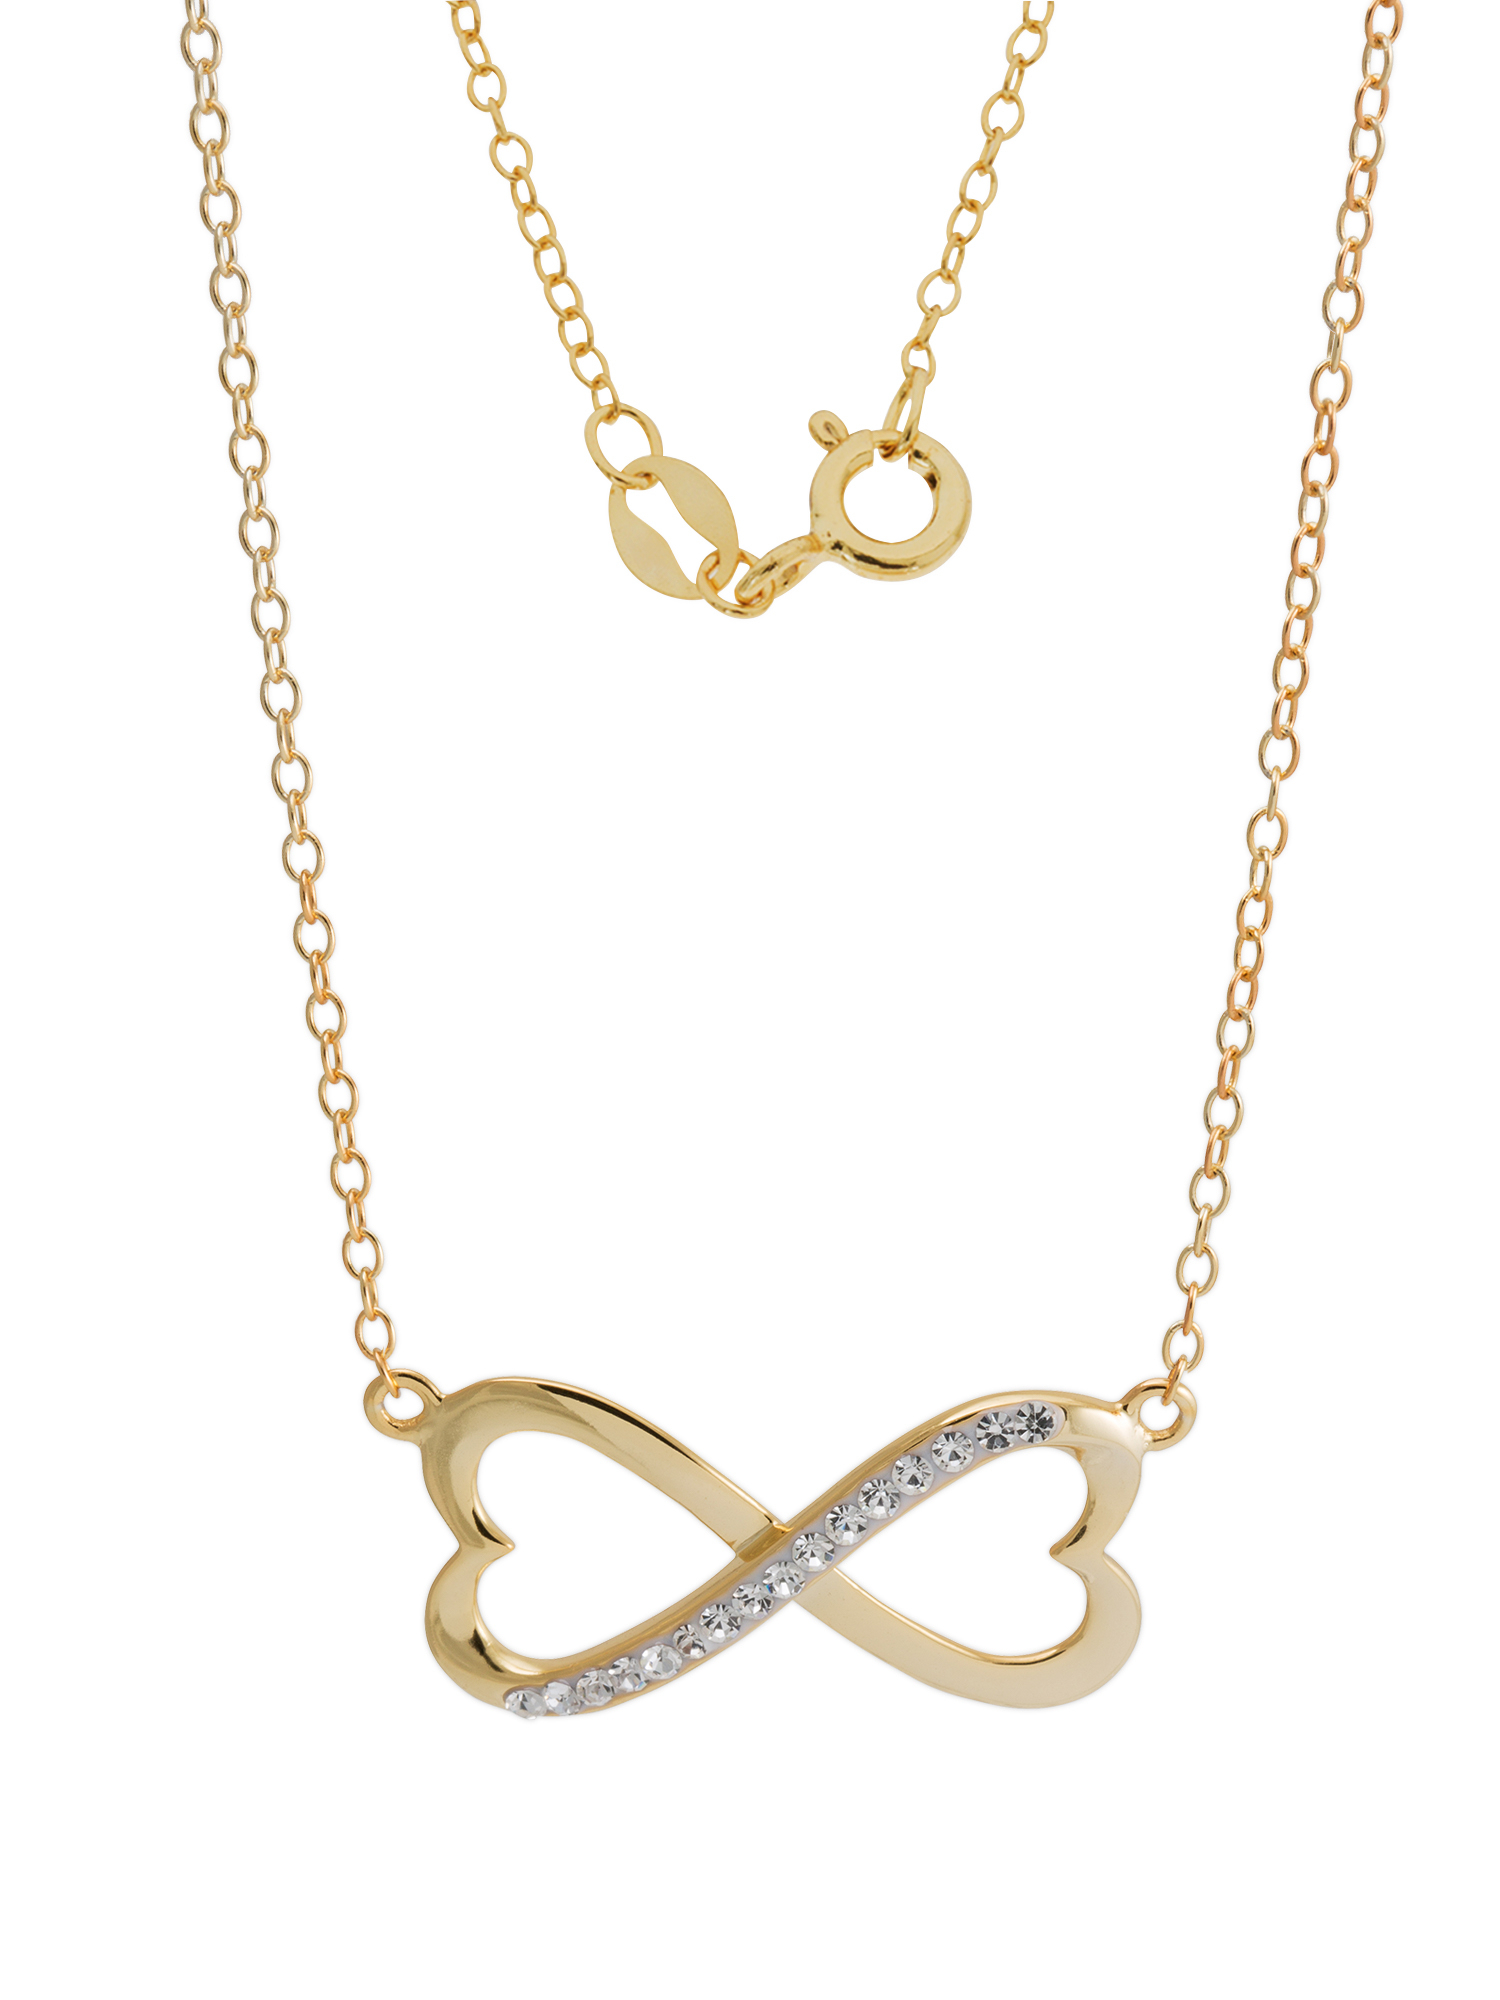 18Kt Gold Over Silver Clear Crystal Infinity/heart Necklace Pertaining To 2019 Sparkling Infinity Locket Element Necklaces (View 2 of 25)